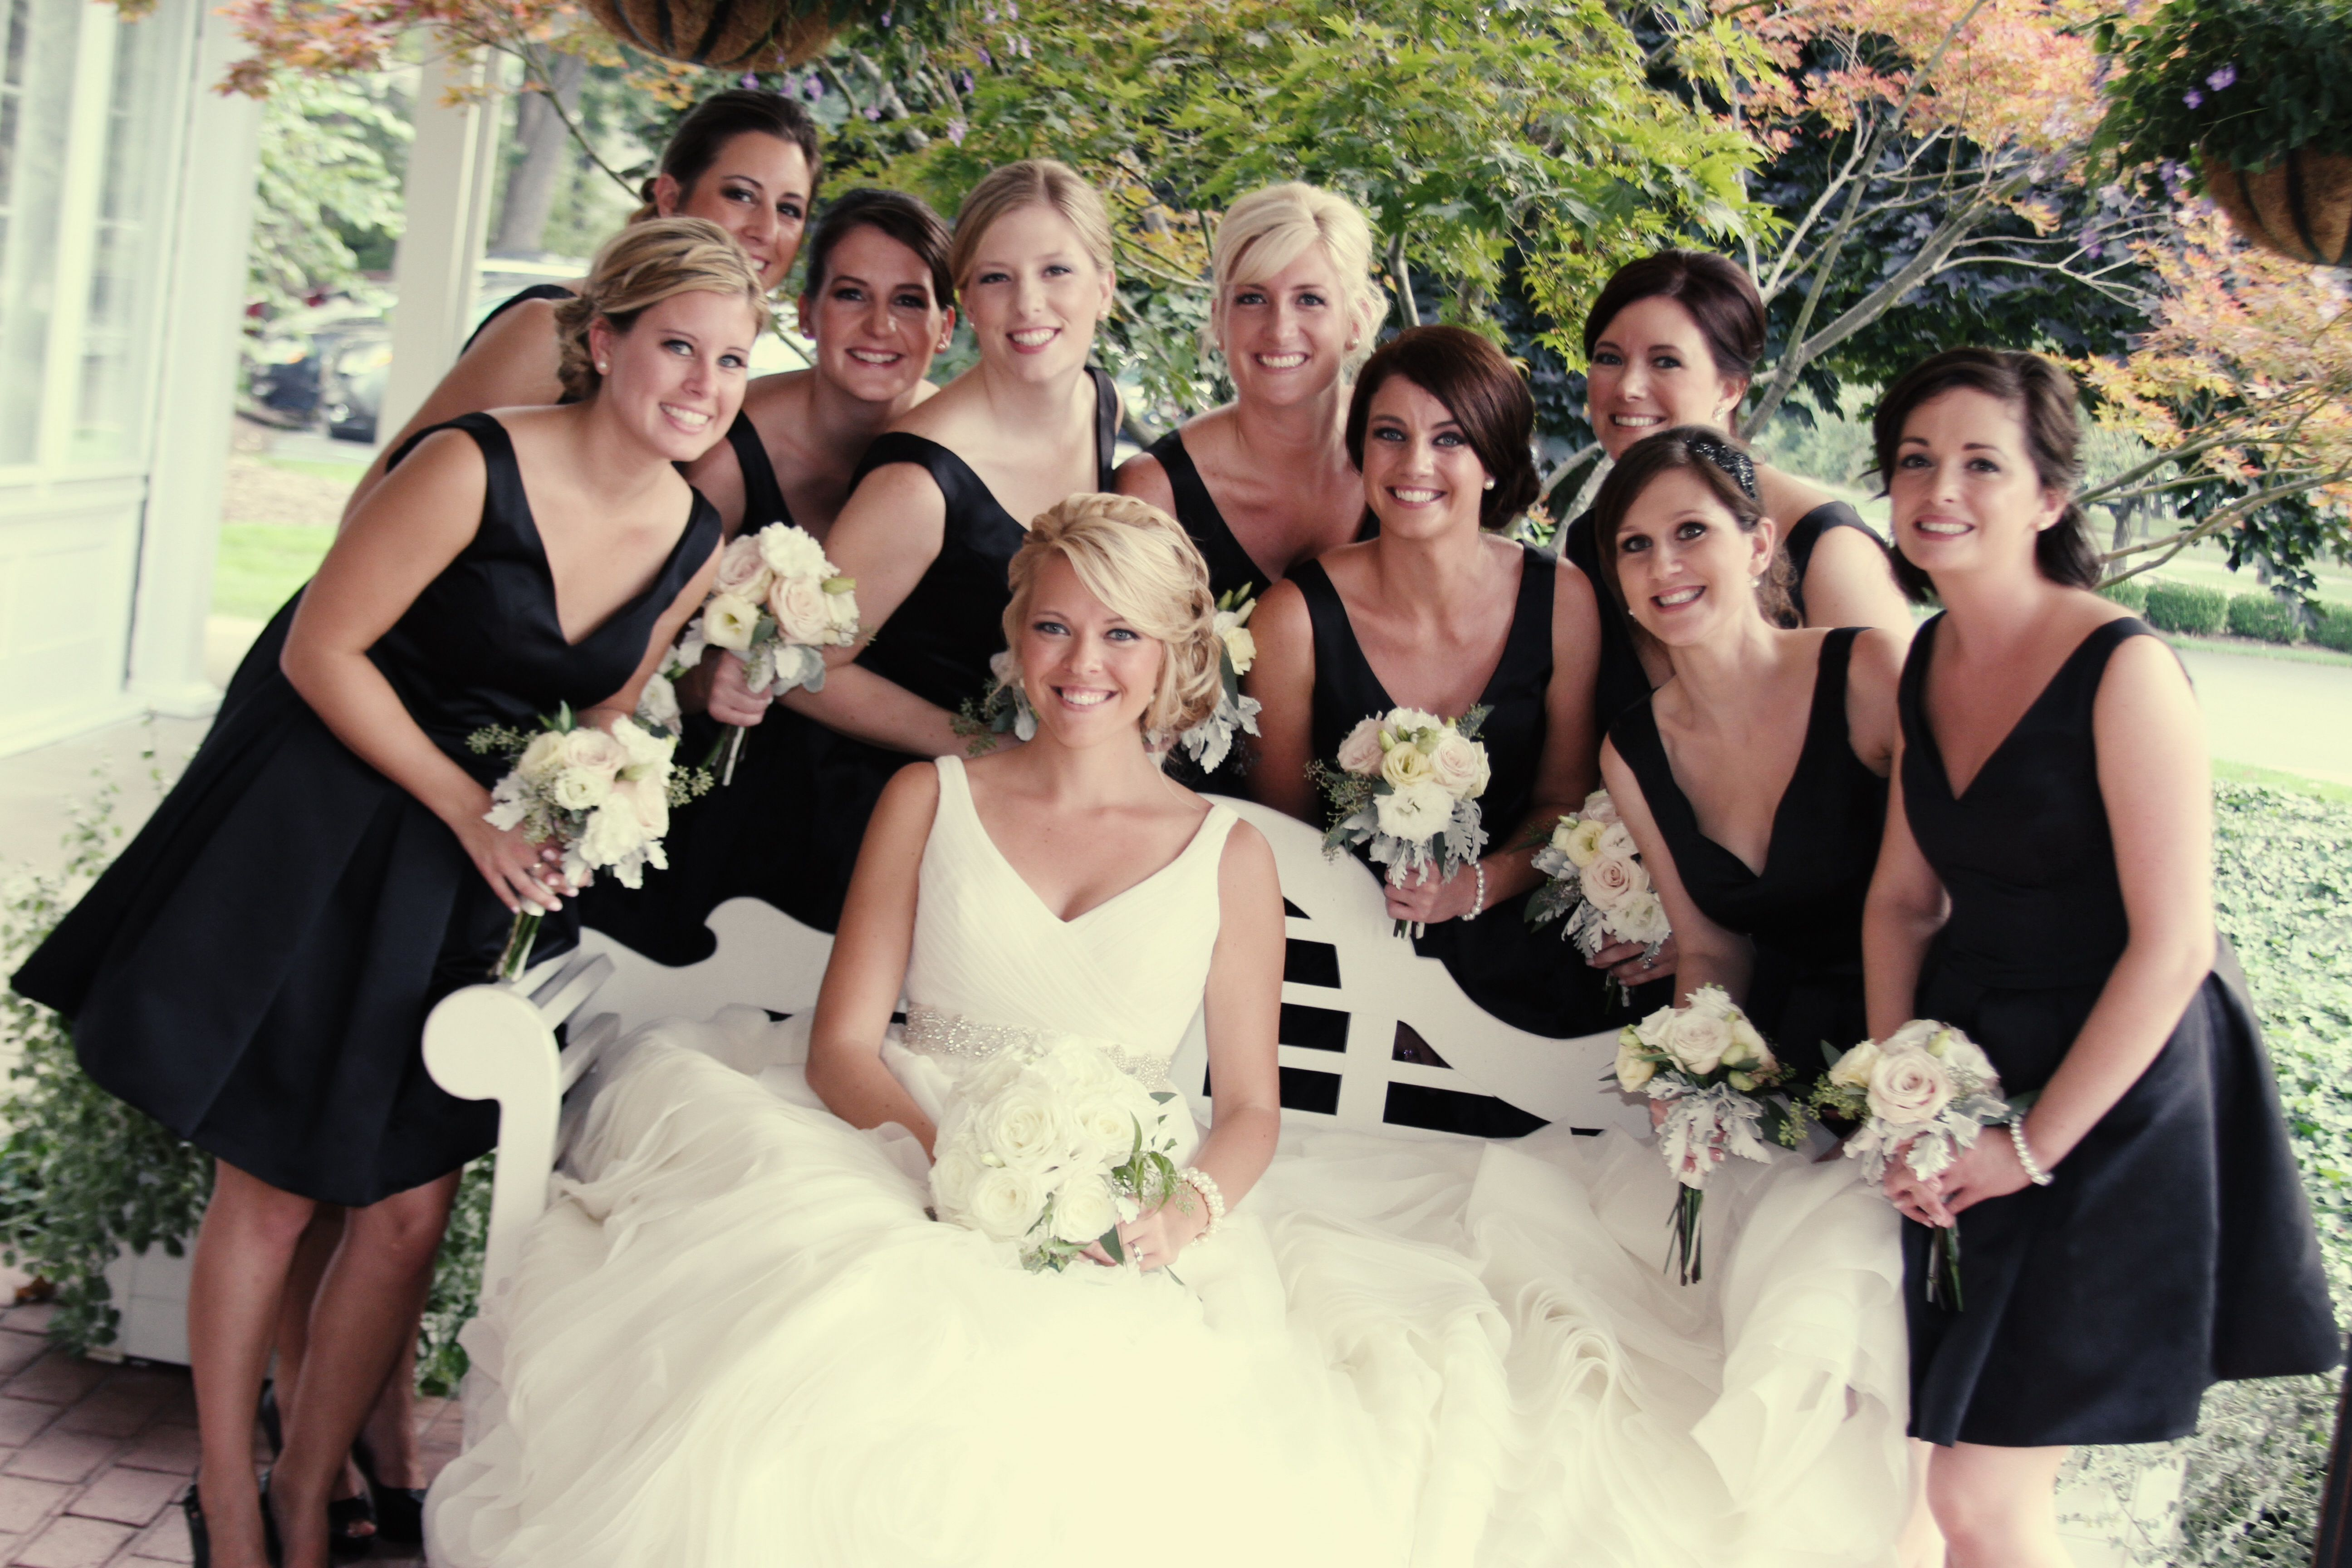 Vera wang bridal gown black bridesmaid dresses ivory flowers vera wang bridal gown black bridesmaid dresses ivory flowers ombrellifo Image collections